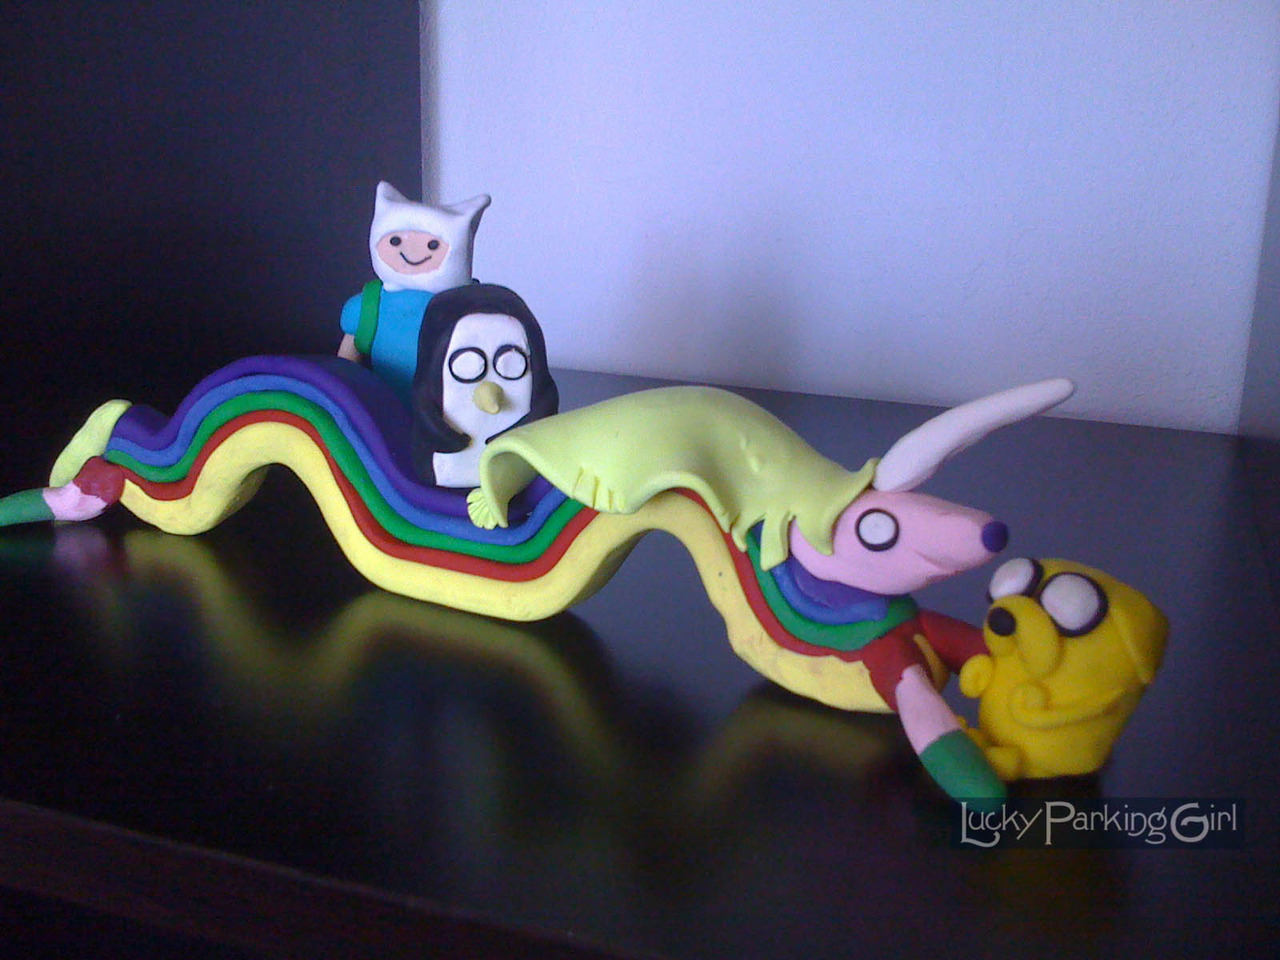 'My entire family loves Adventure Time. Here are just some of the clay figures we've made.' Thanks luckyparkinggirl for the submission.